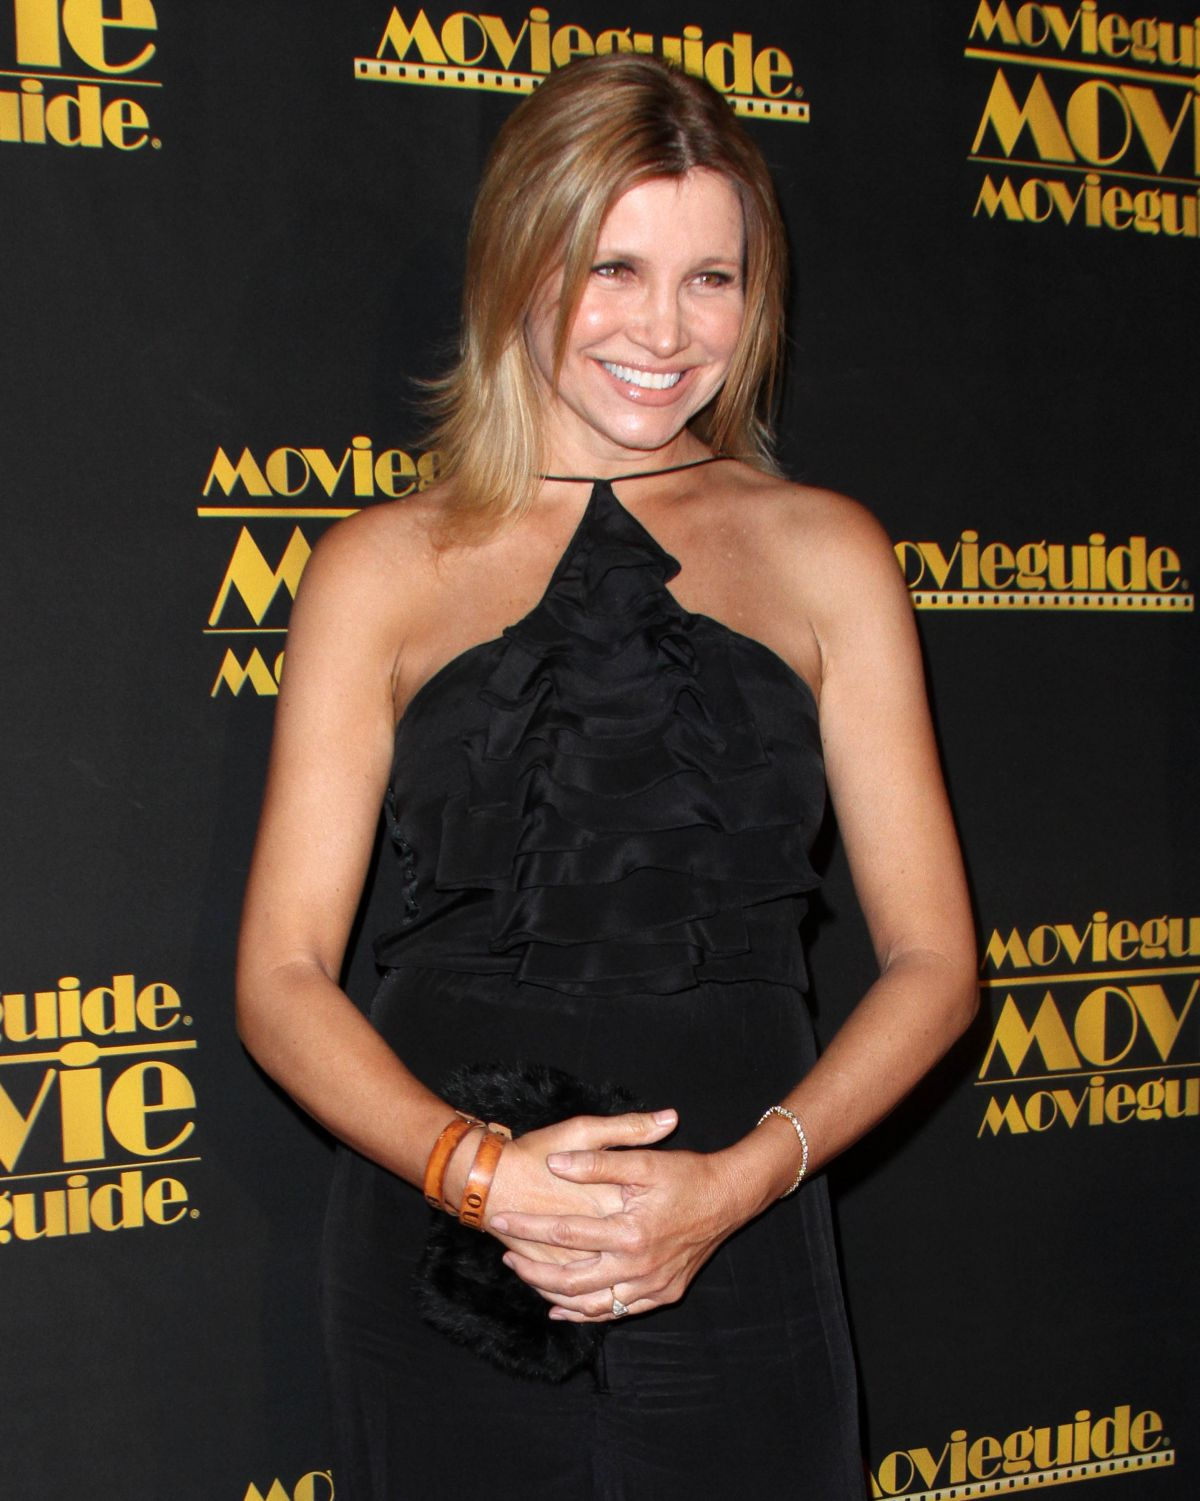 GIGI RICE at Movieguide Awards 2016 in Los Angeles 02/05/2016